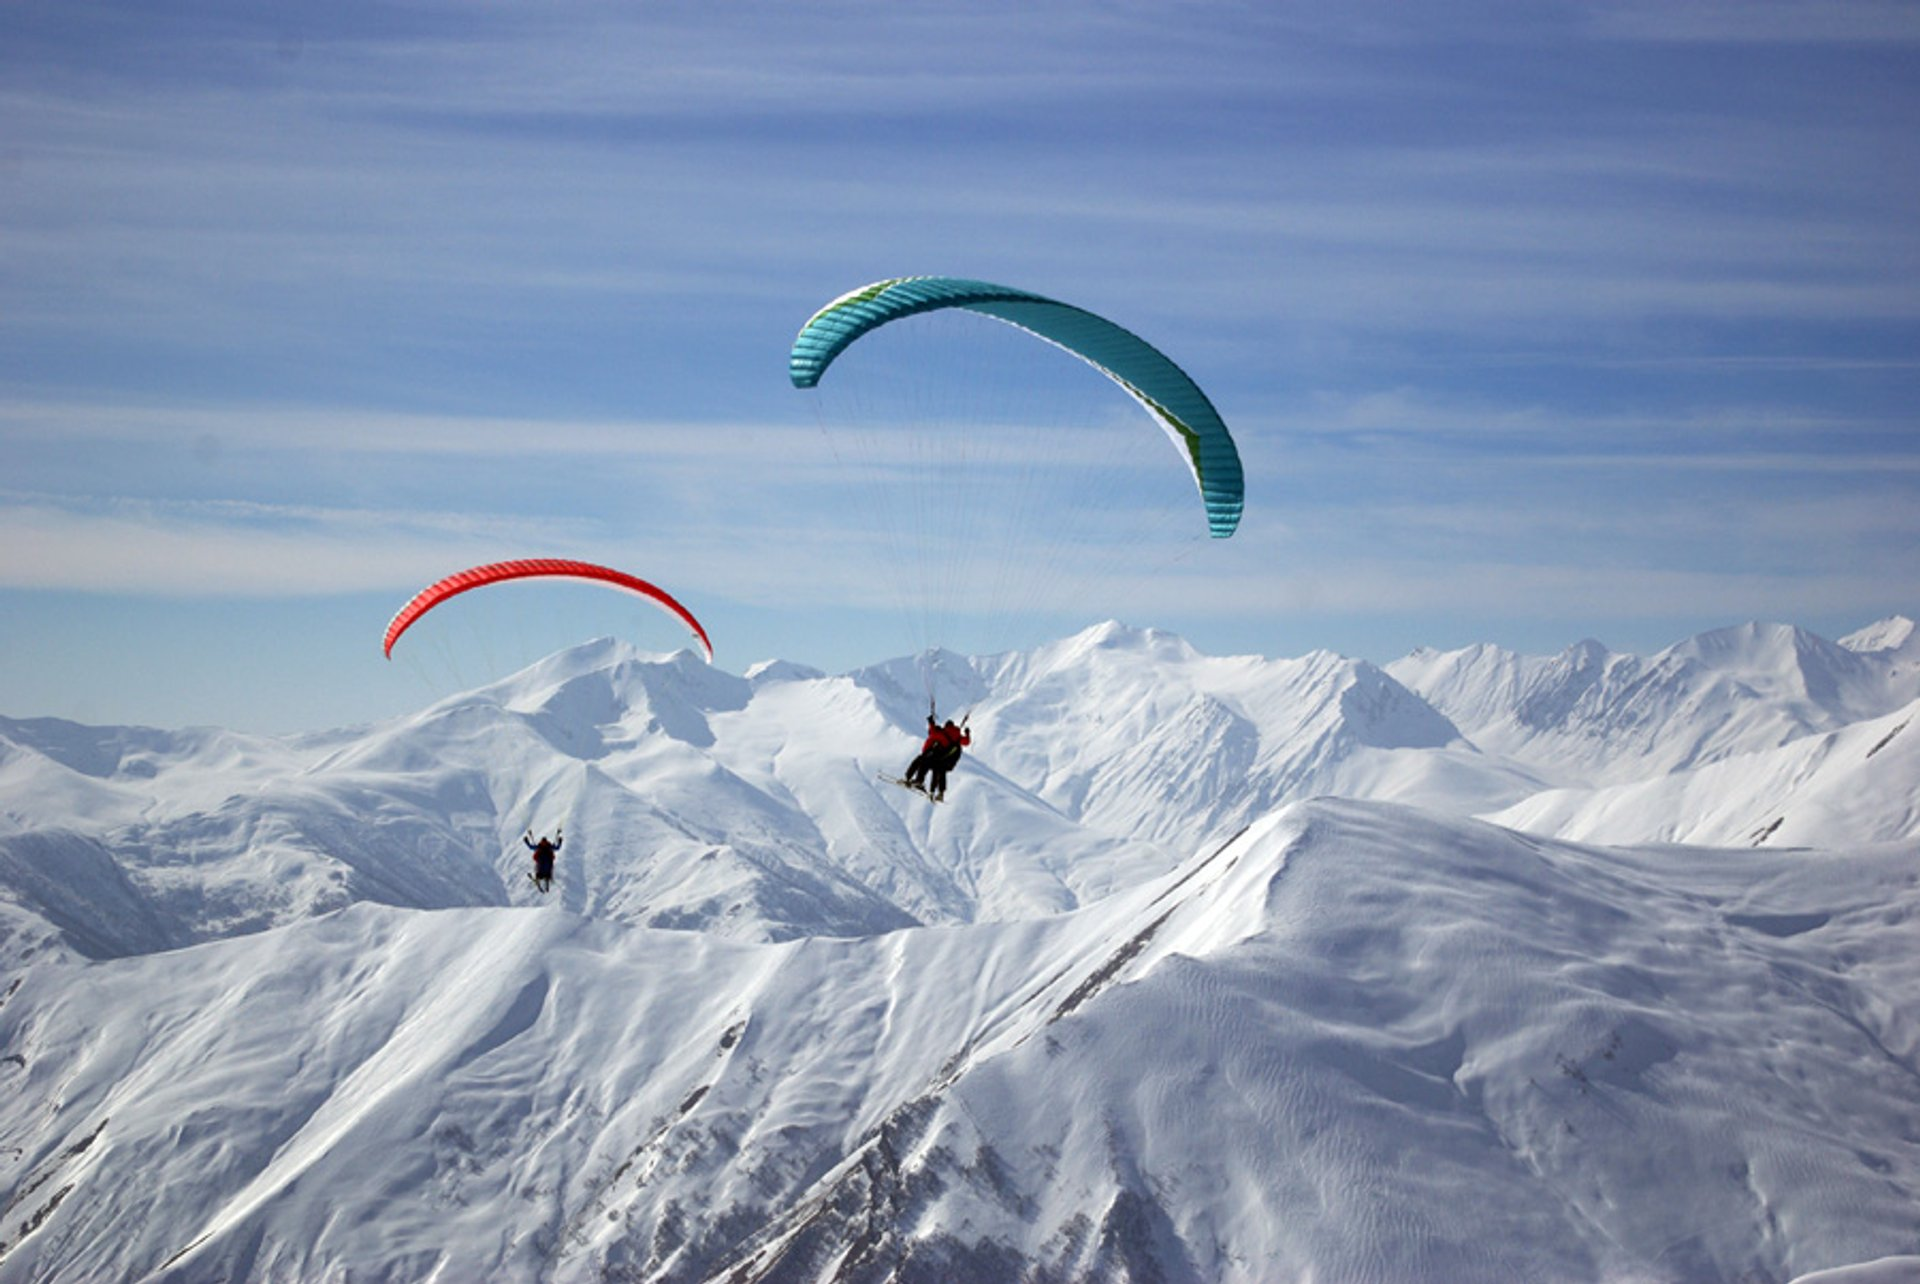 Paragliding Winter Season in Georgia 2019 - Best Time